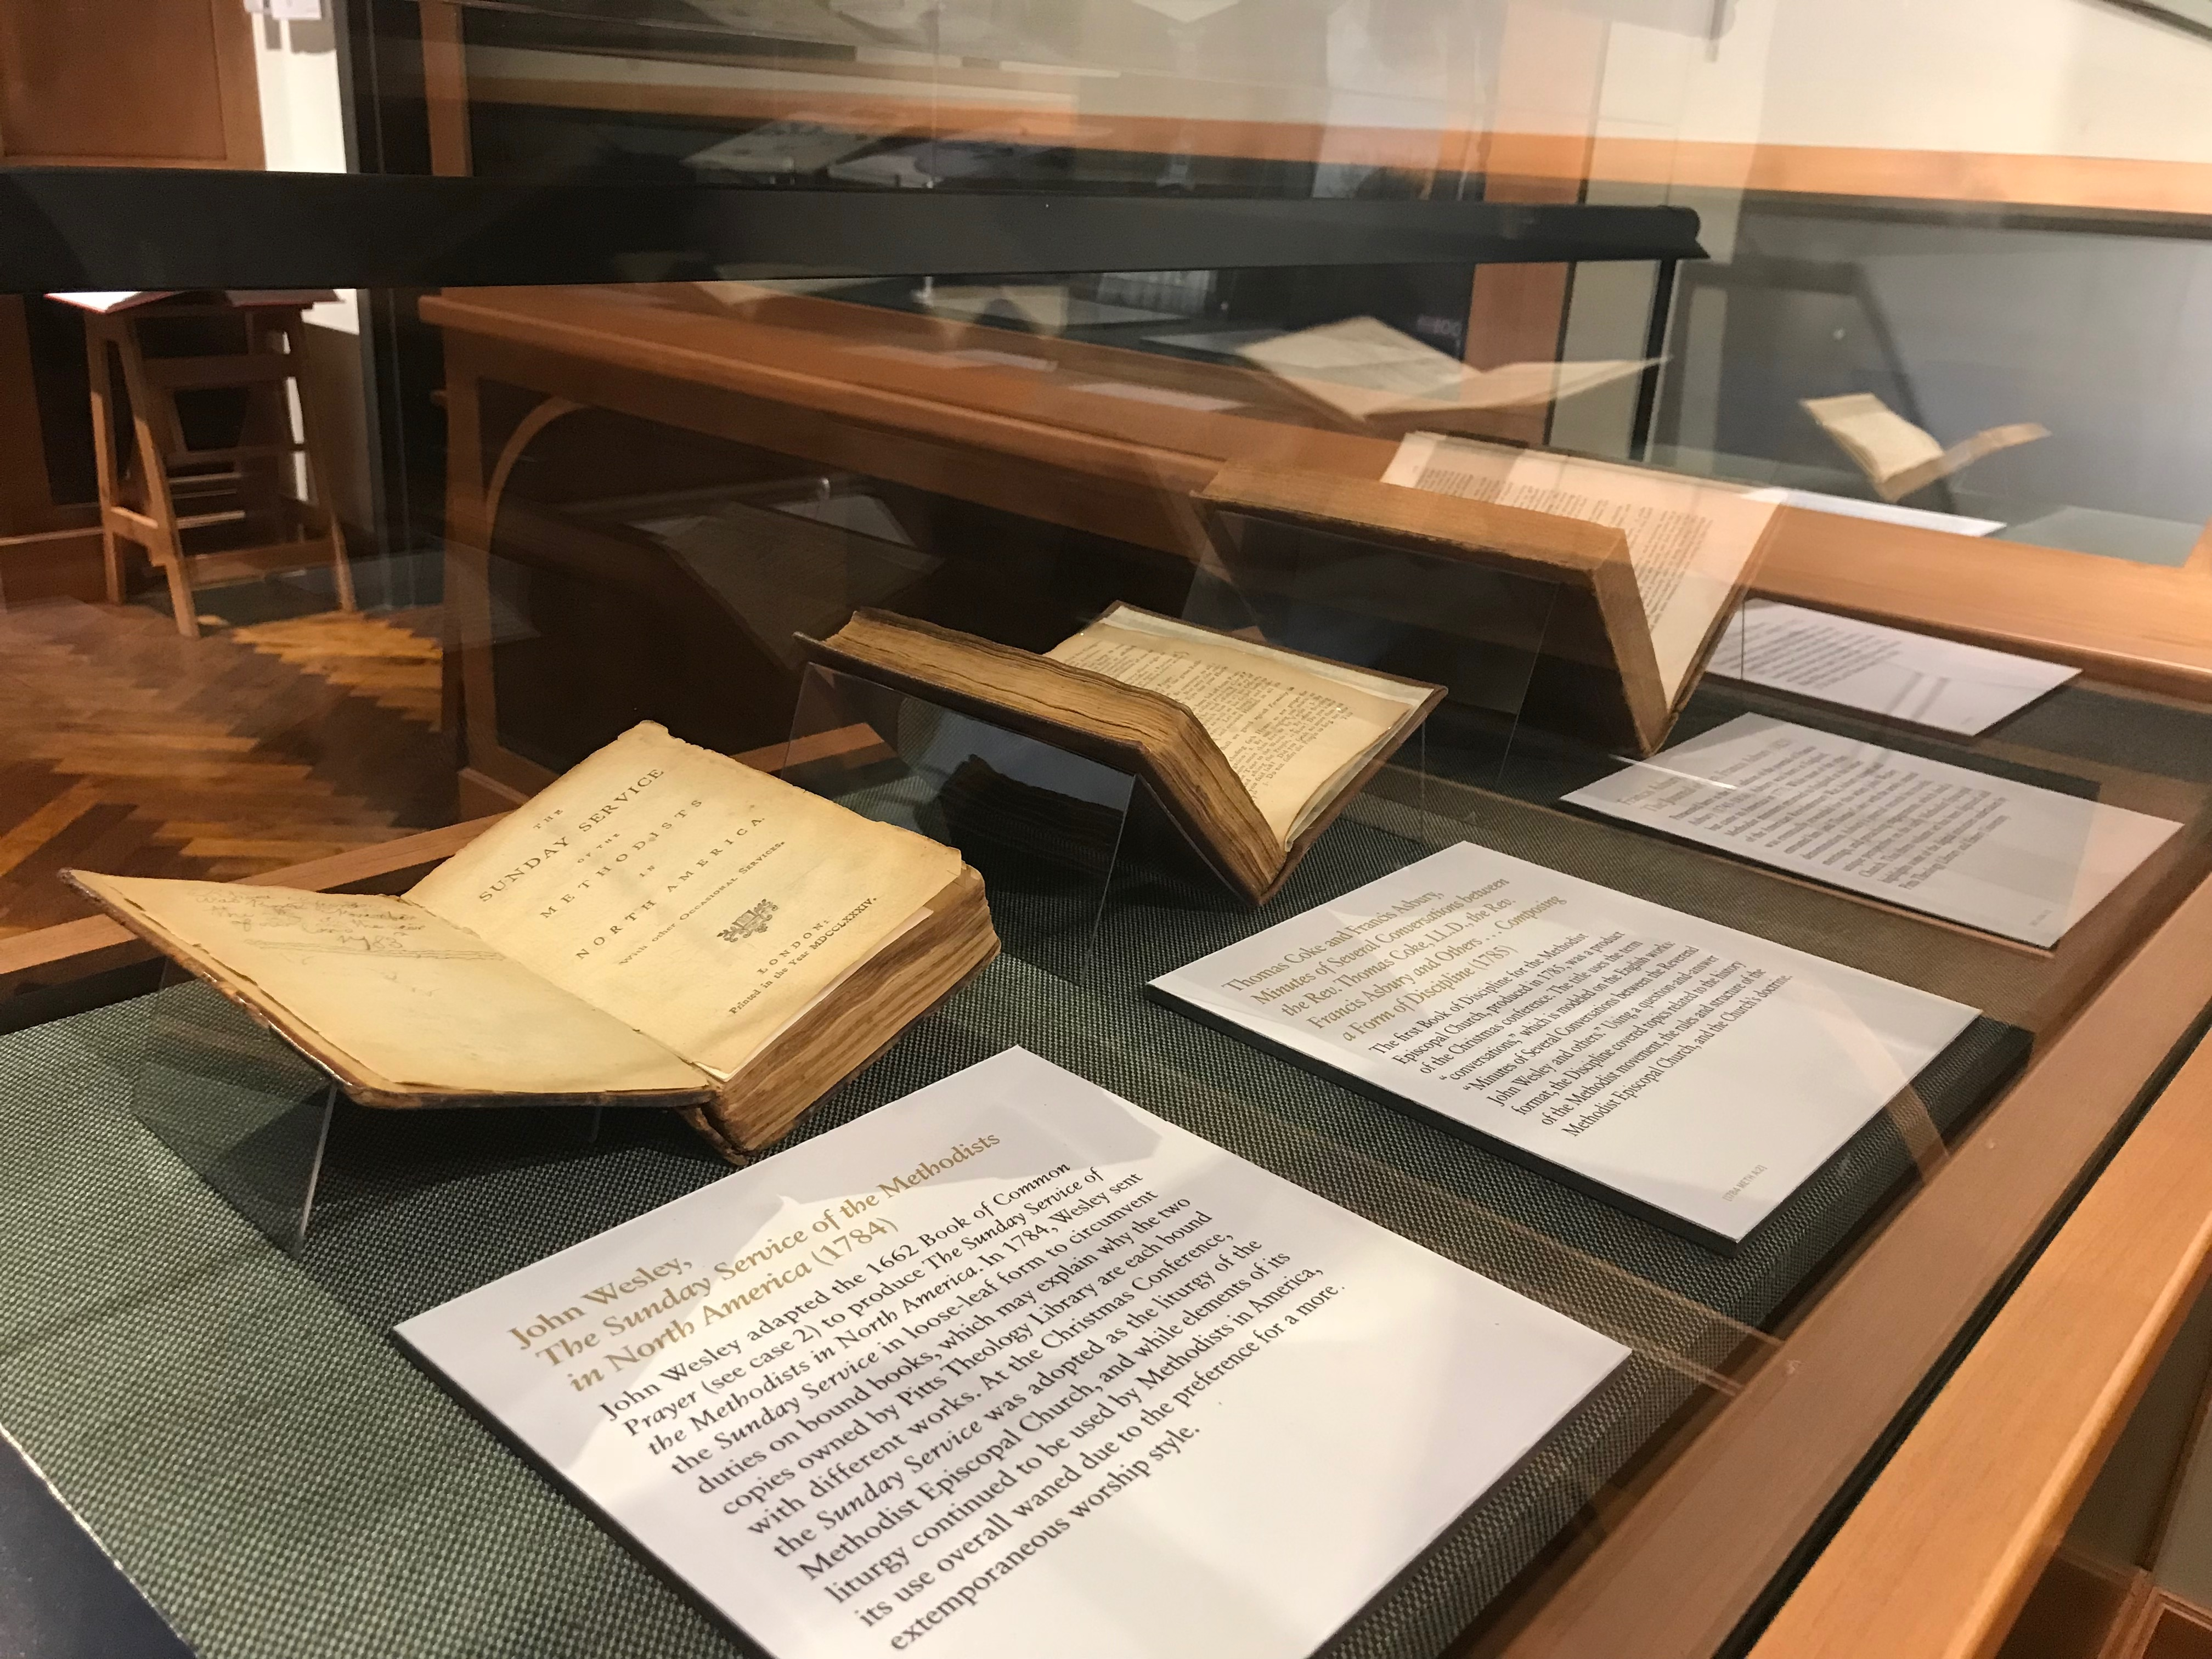 Pitts Theology Library Exhibition Gallery